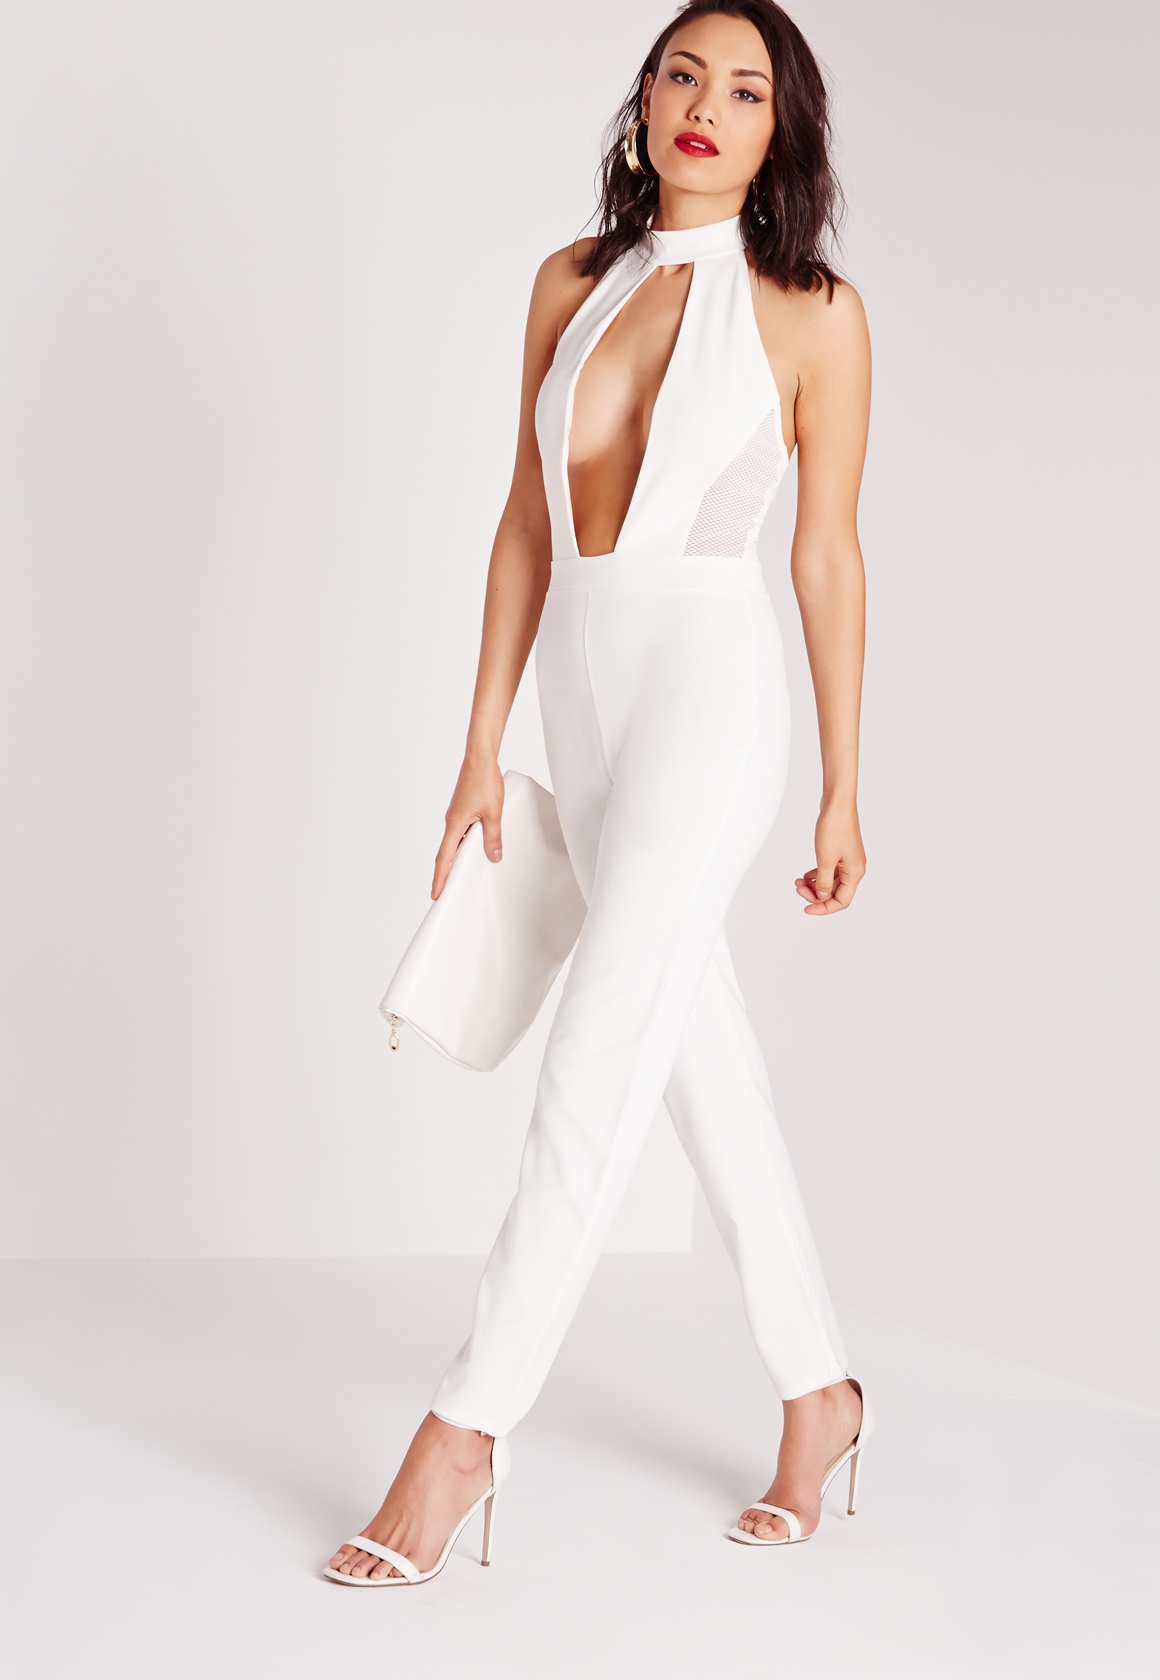 aea50c7cd516 Lyst - Missguided Mesh Extreme Plunge Choker Jumpsuit White in White